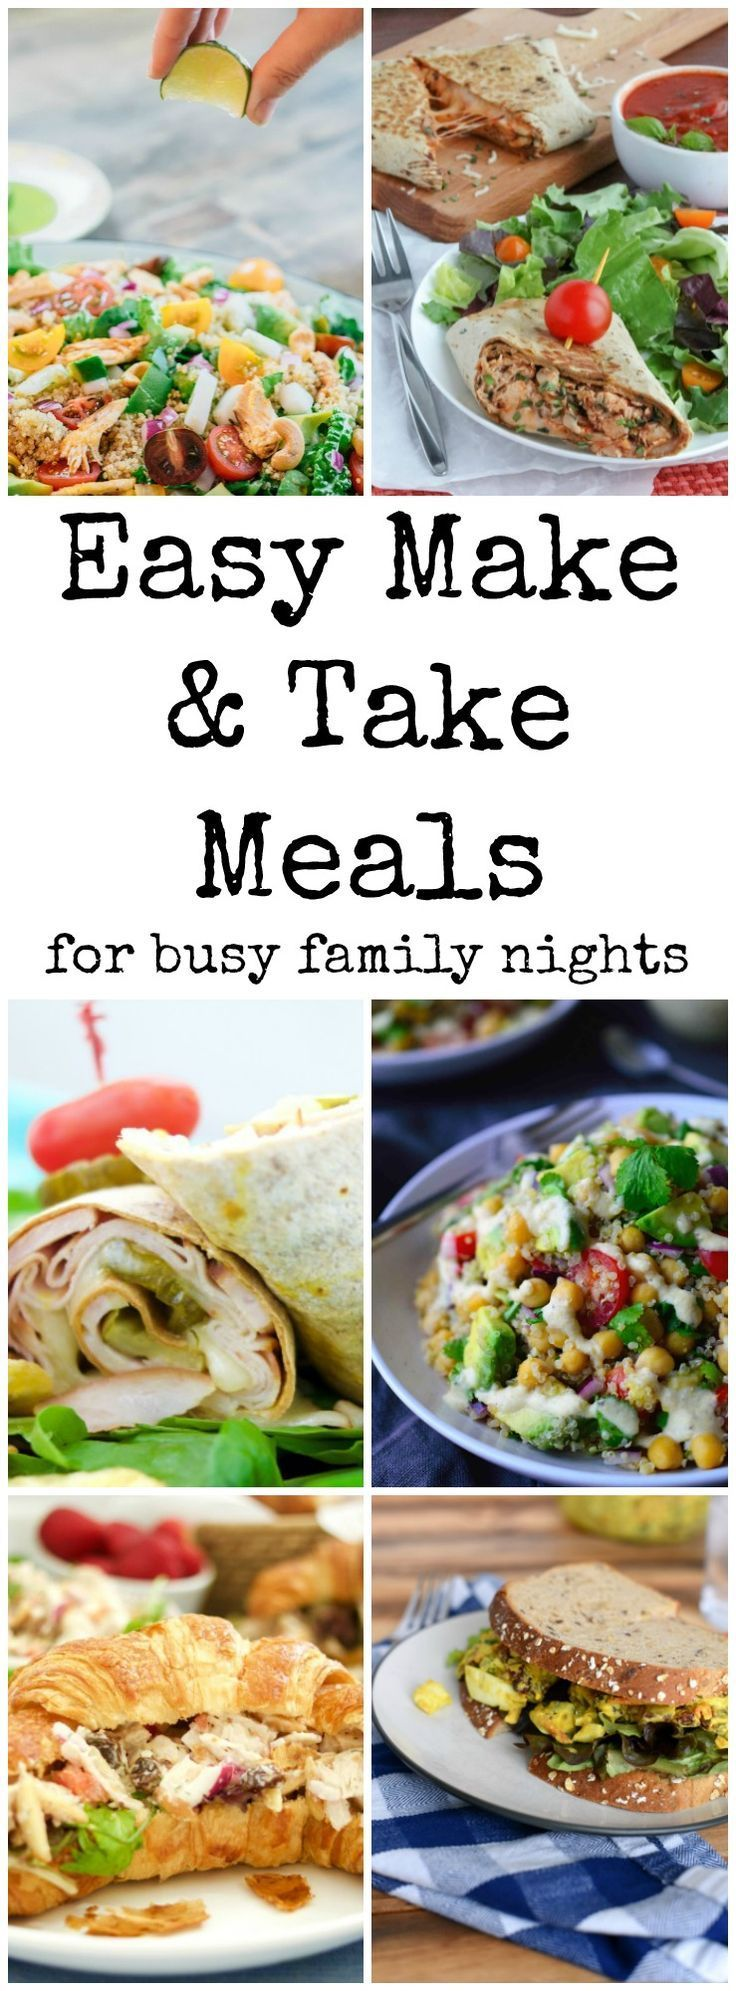 Have a busy night schedule with lessons, soccer practice and the baseball field? These easy take and make meals are perfect healthy picnics for your family! via @GingeredWhisk